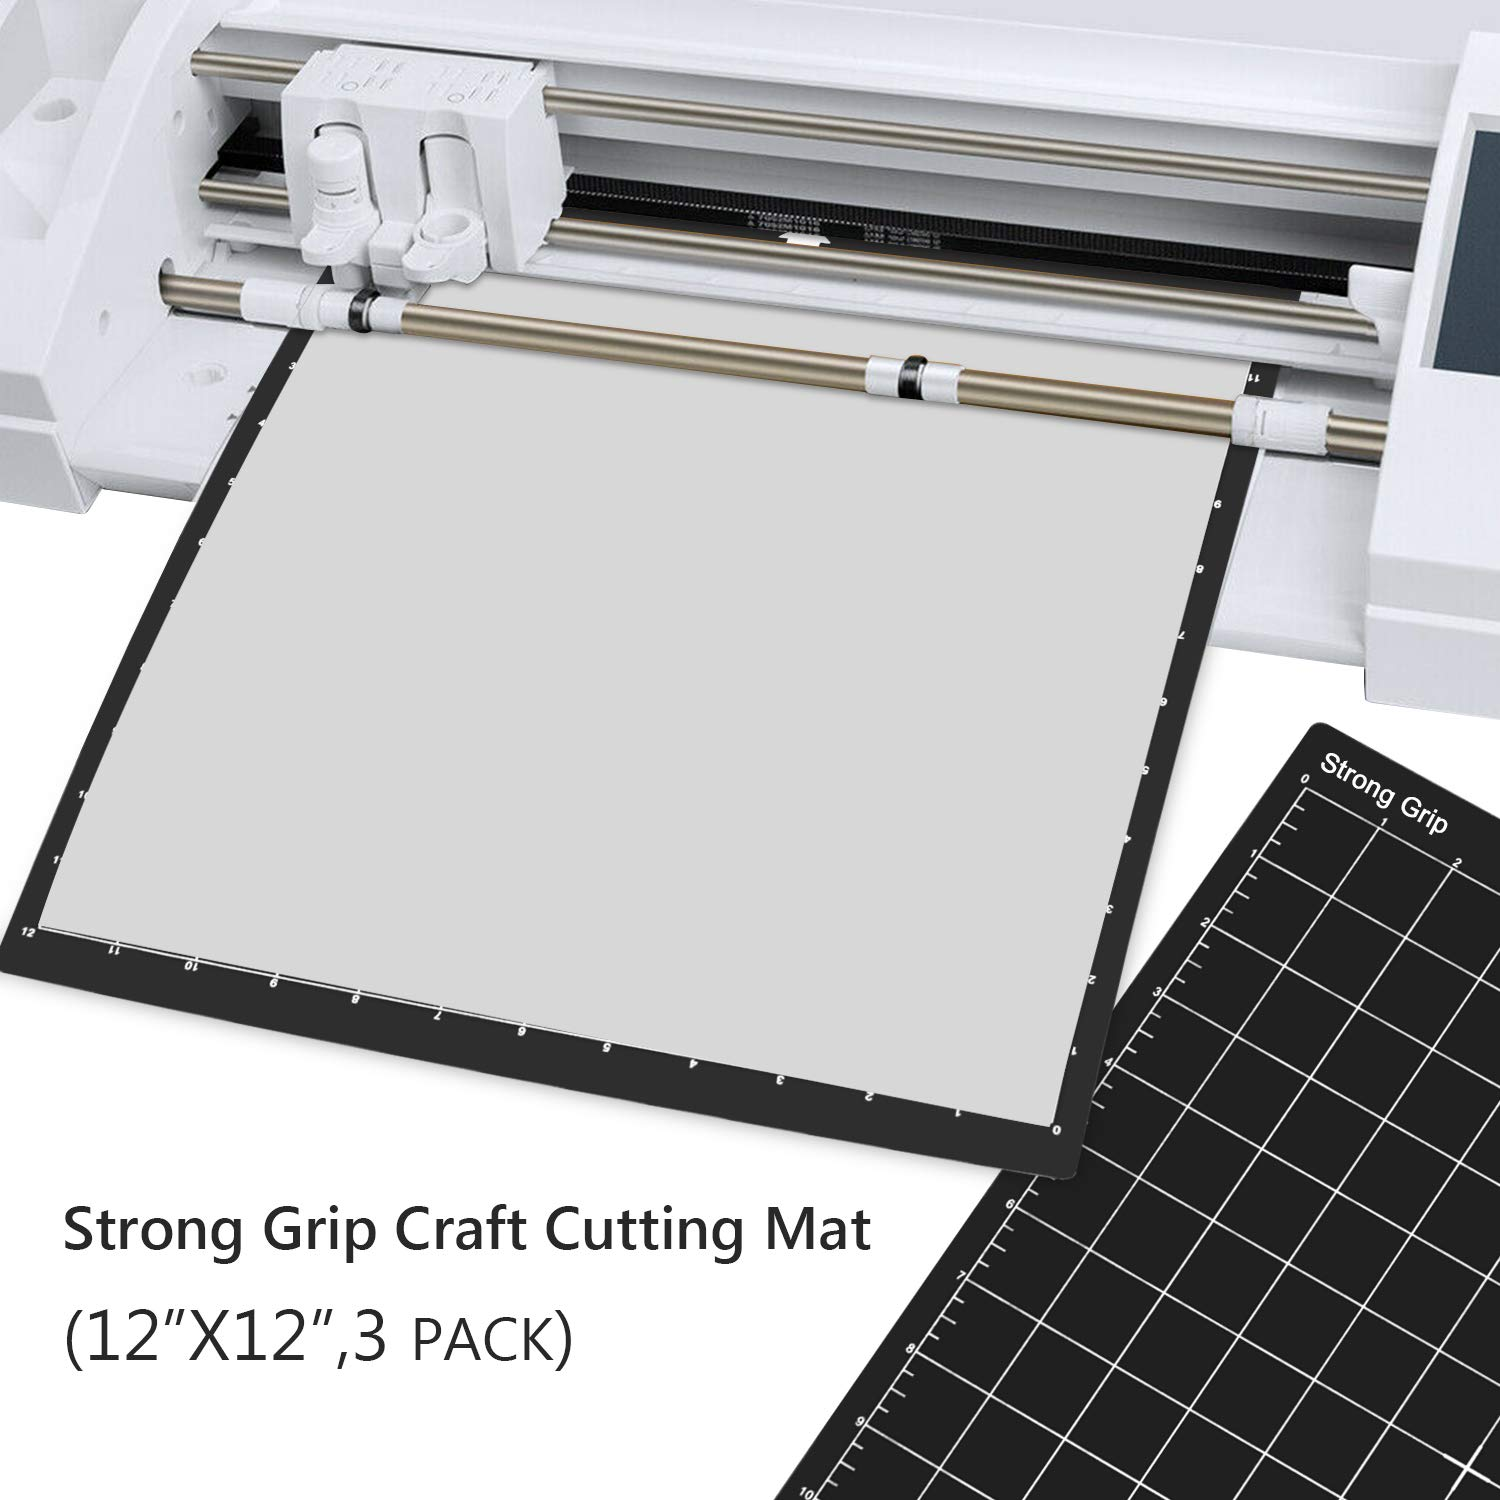 Scrapbooking and All Arts Sewing Gridded Adhesive Non-Slip Cut Mat for Crafts REALIKE 12x12 Cutting Mat for Silhouette Cameo 3//2//1 Quilting 3 Mats - StandardGrip, LightGrip, StrongGrip